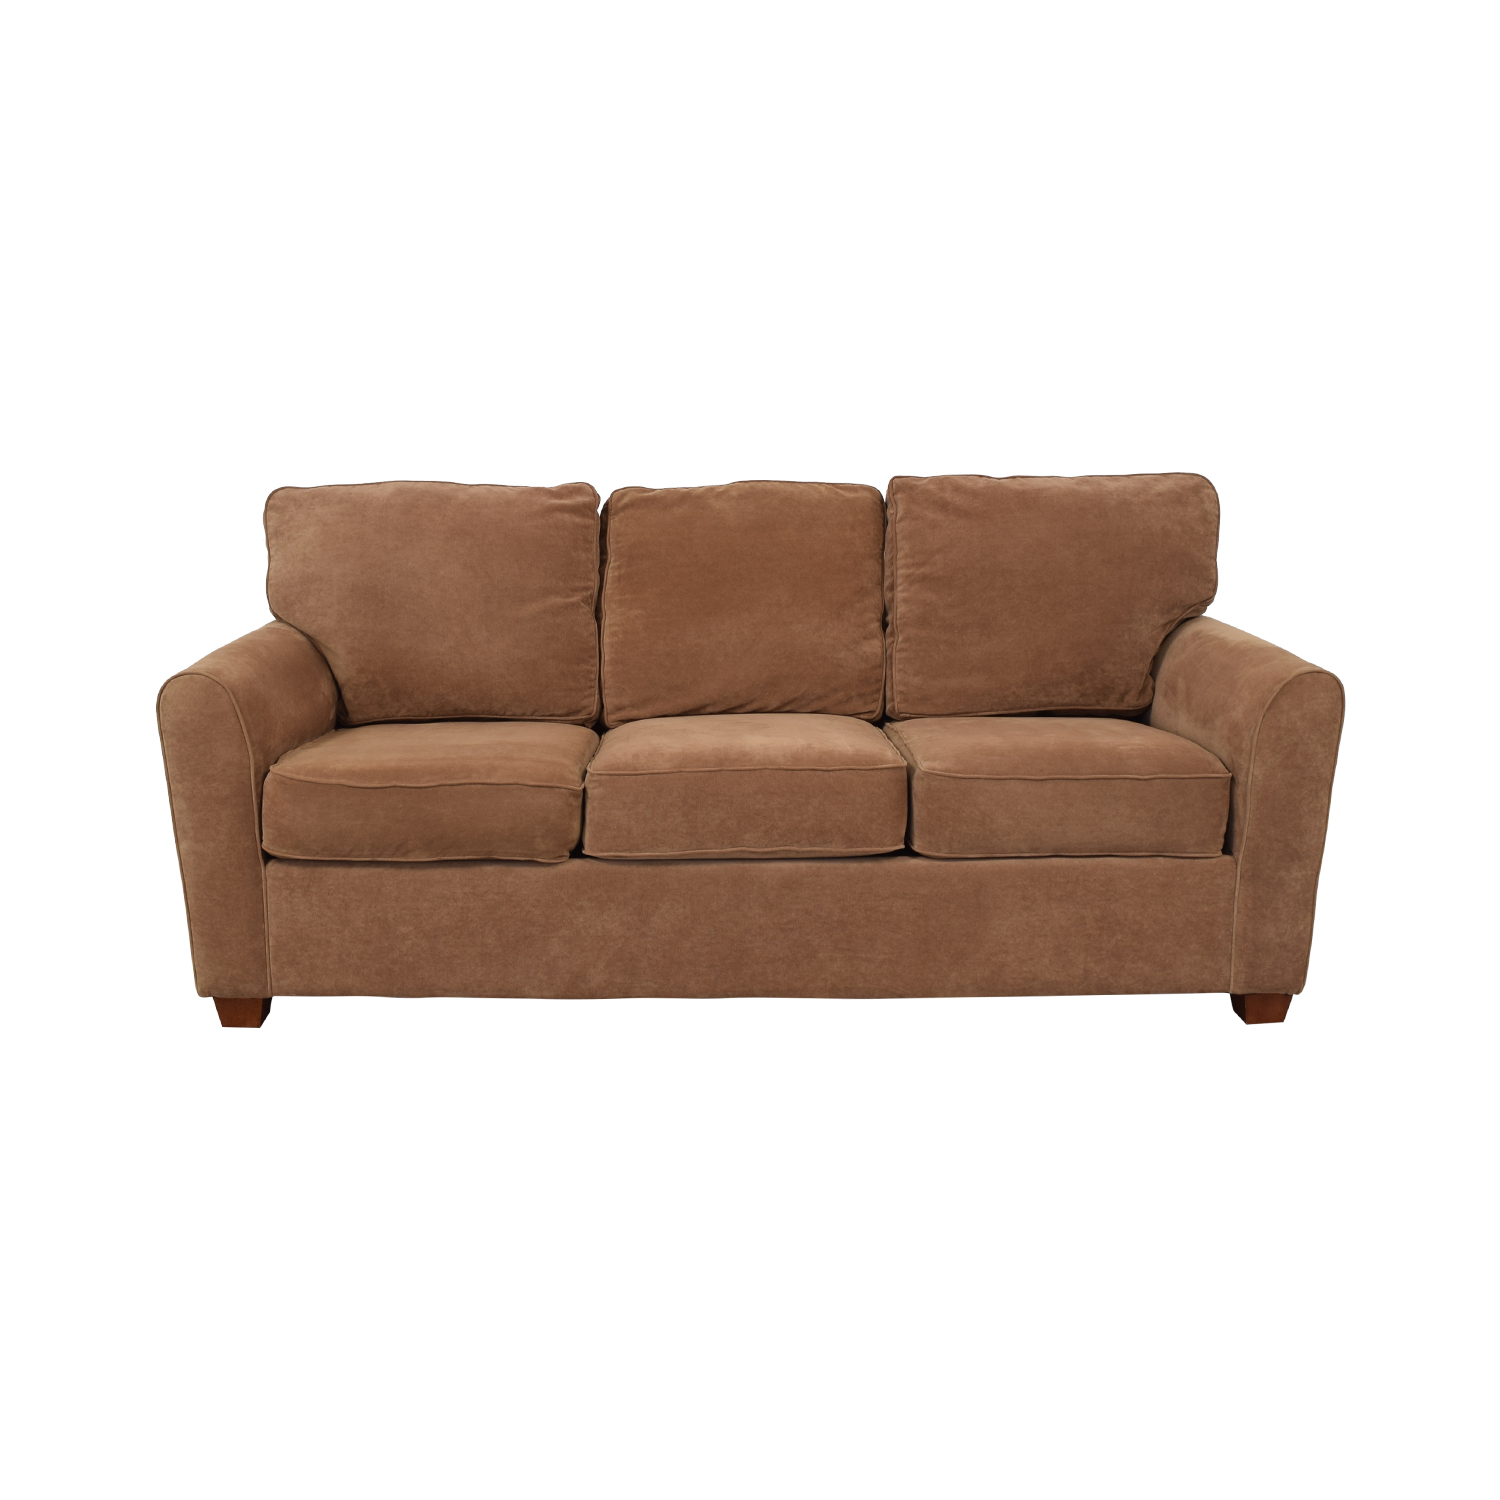 buy La-Z-Boy Stationary Three-Cushion Sofa La-Z-Boy Classic Sofas